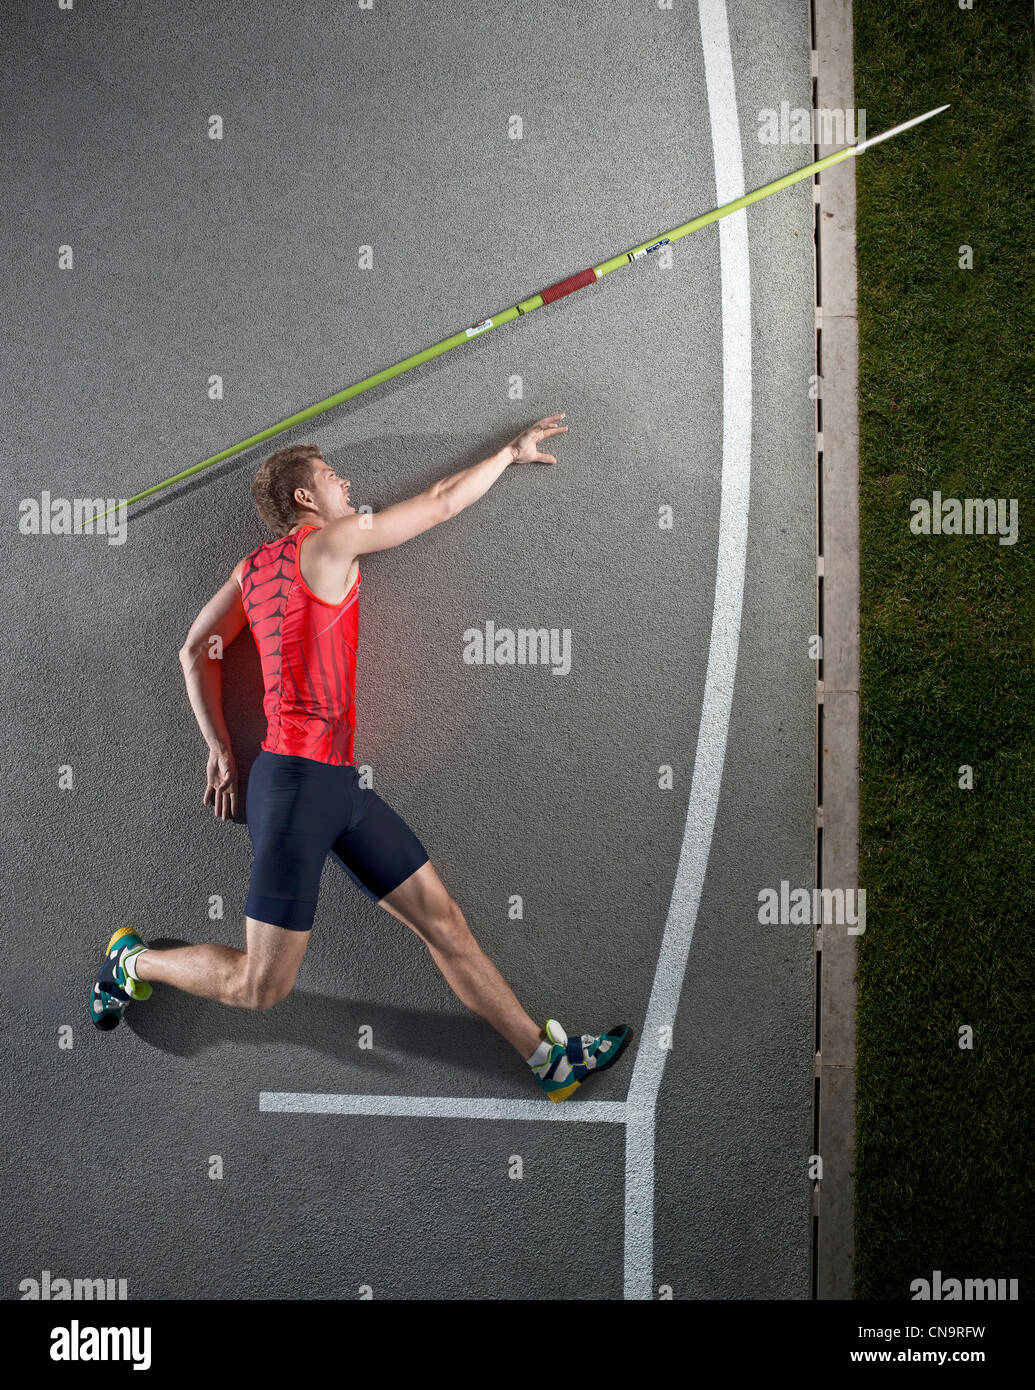 Javelin thrower laying on track Stock Photo